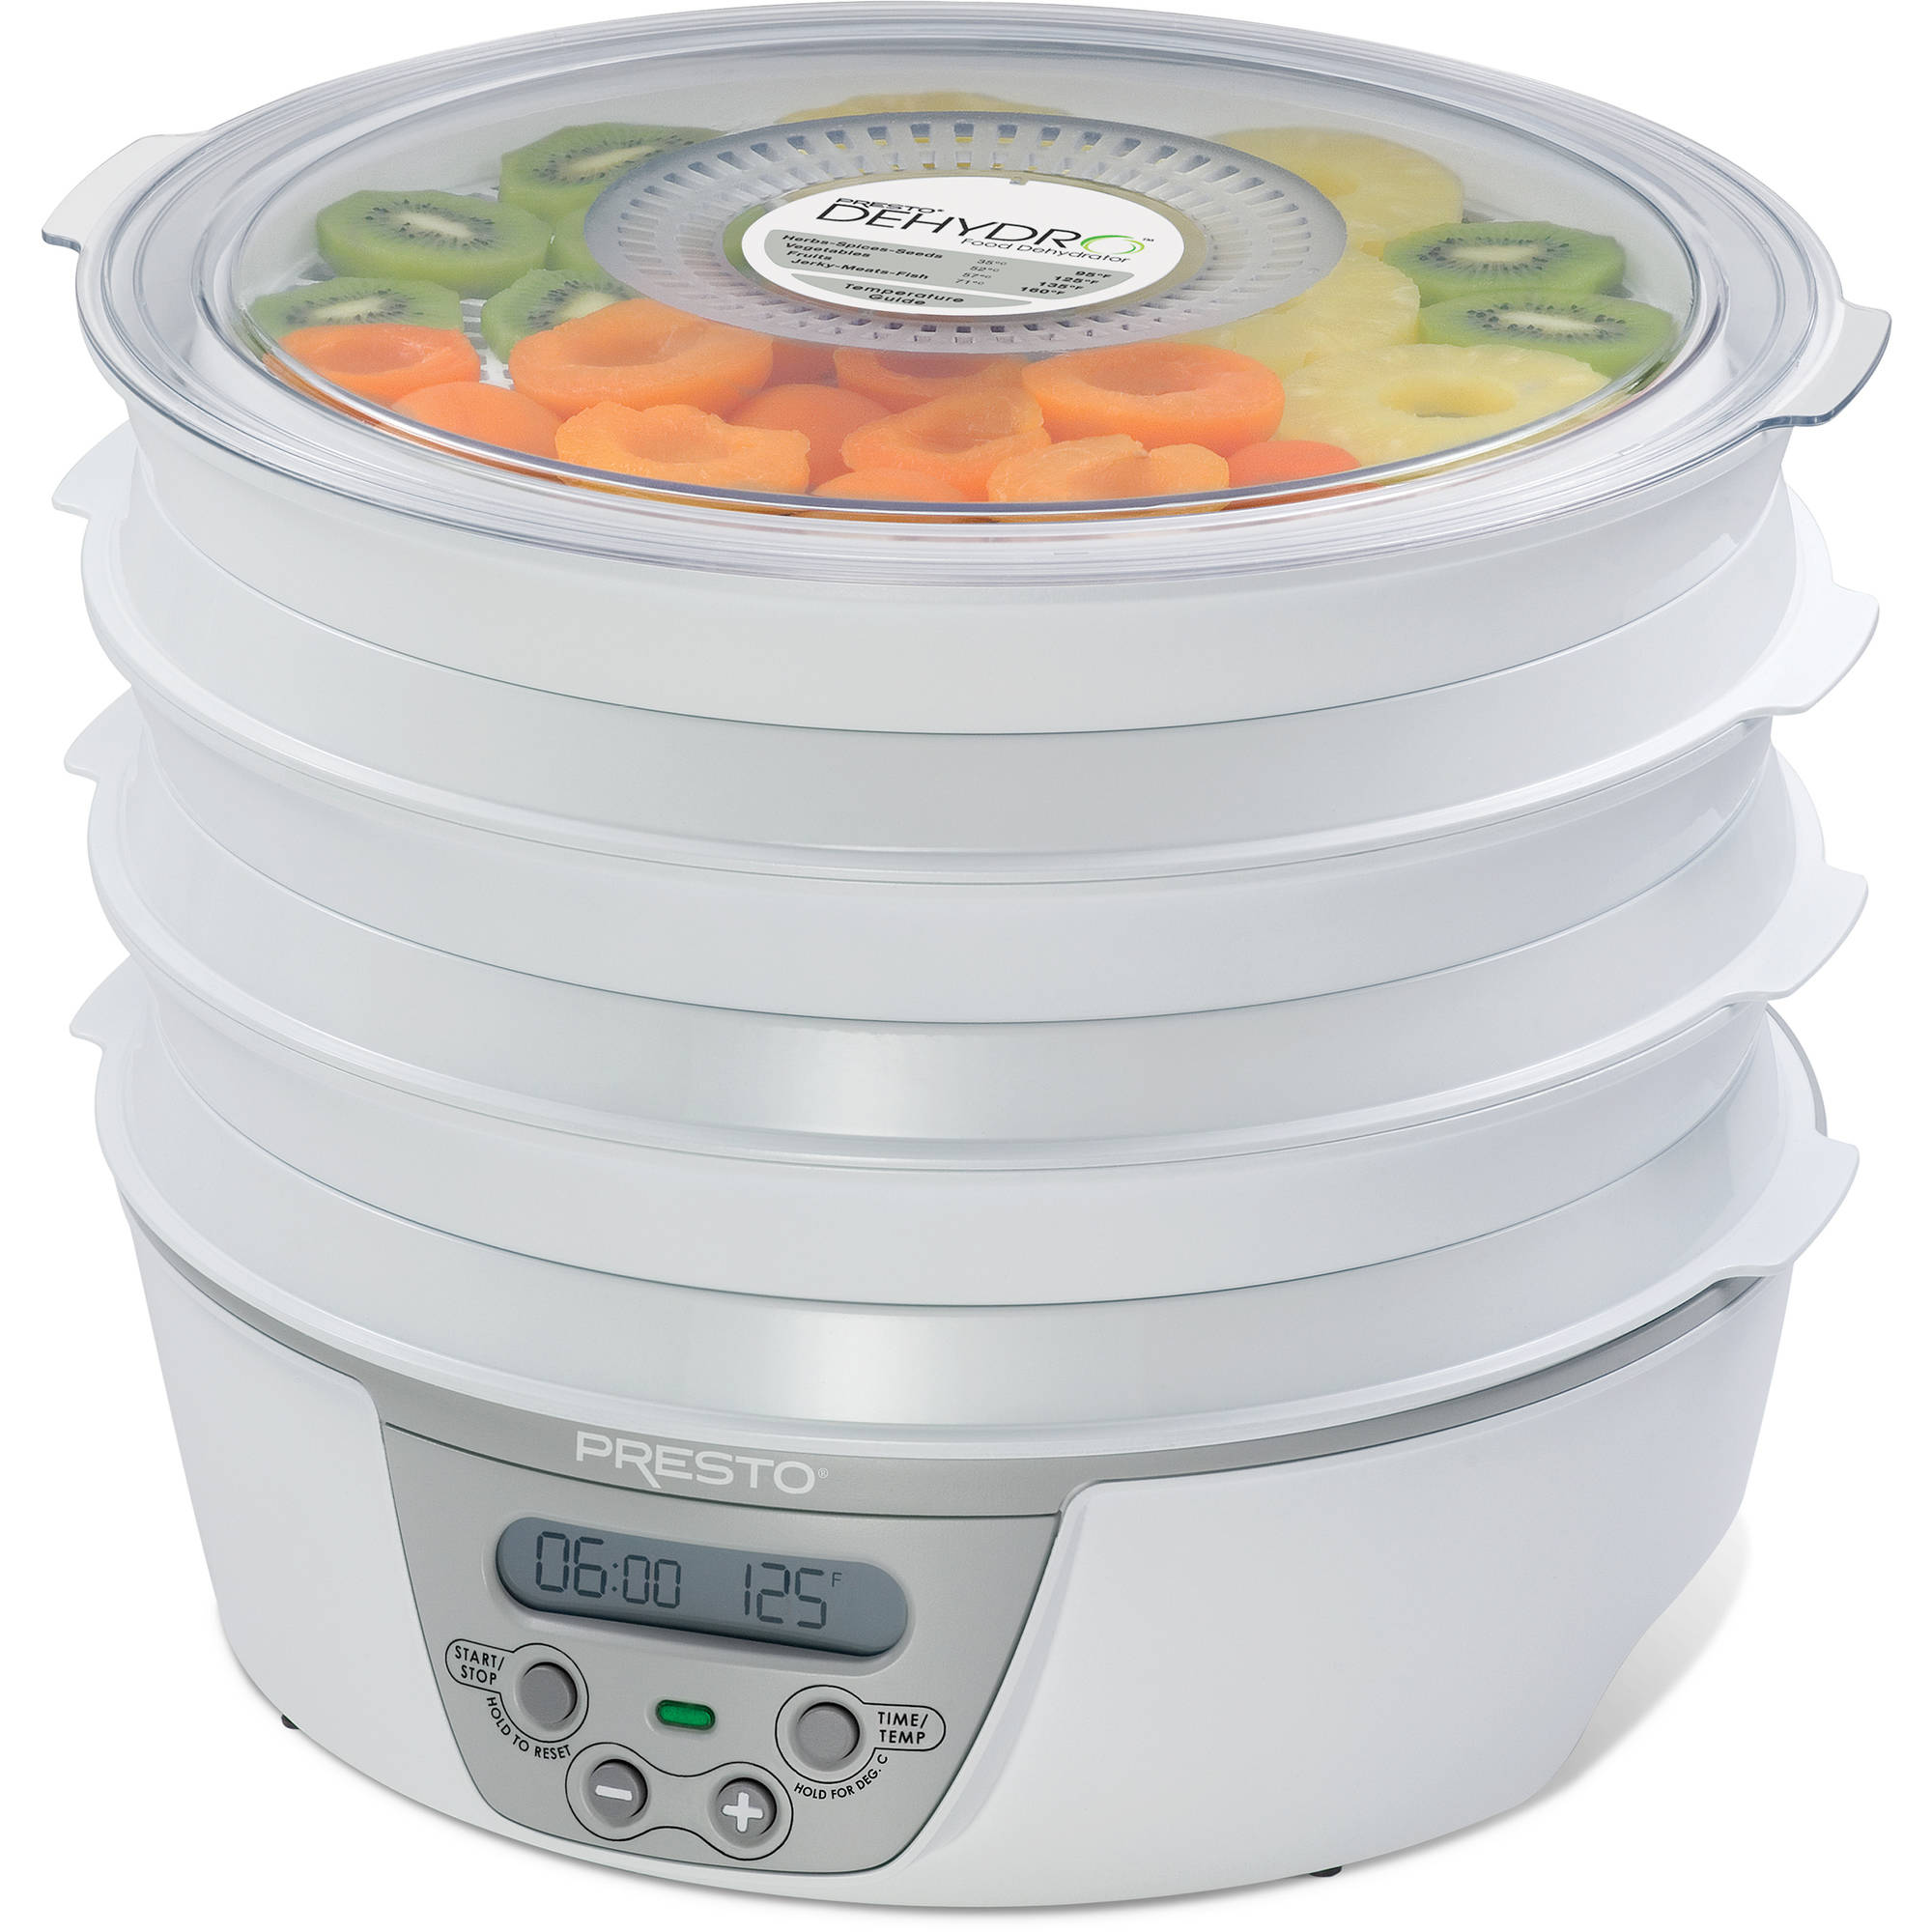 Presto Dehydro Digital Electric Food Dehydrator, 06301